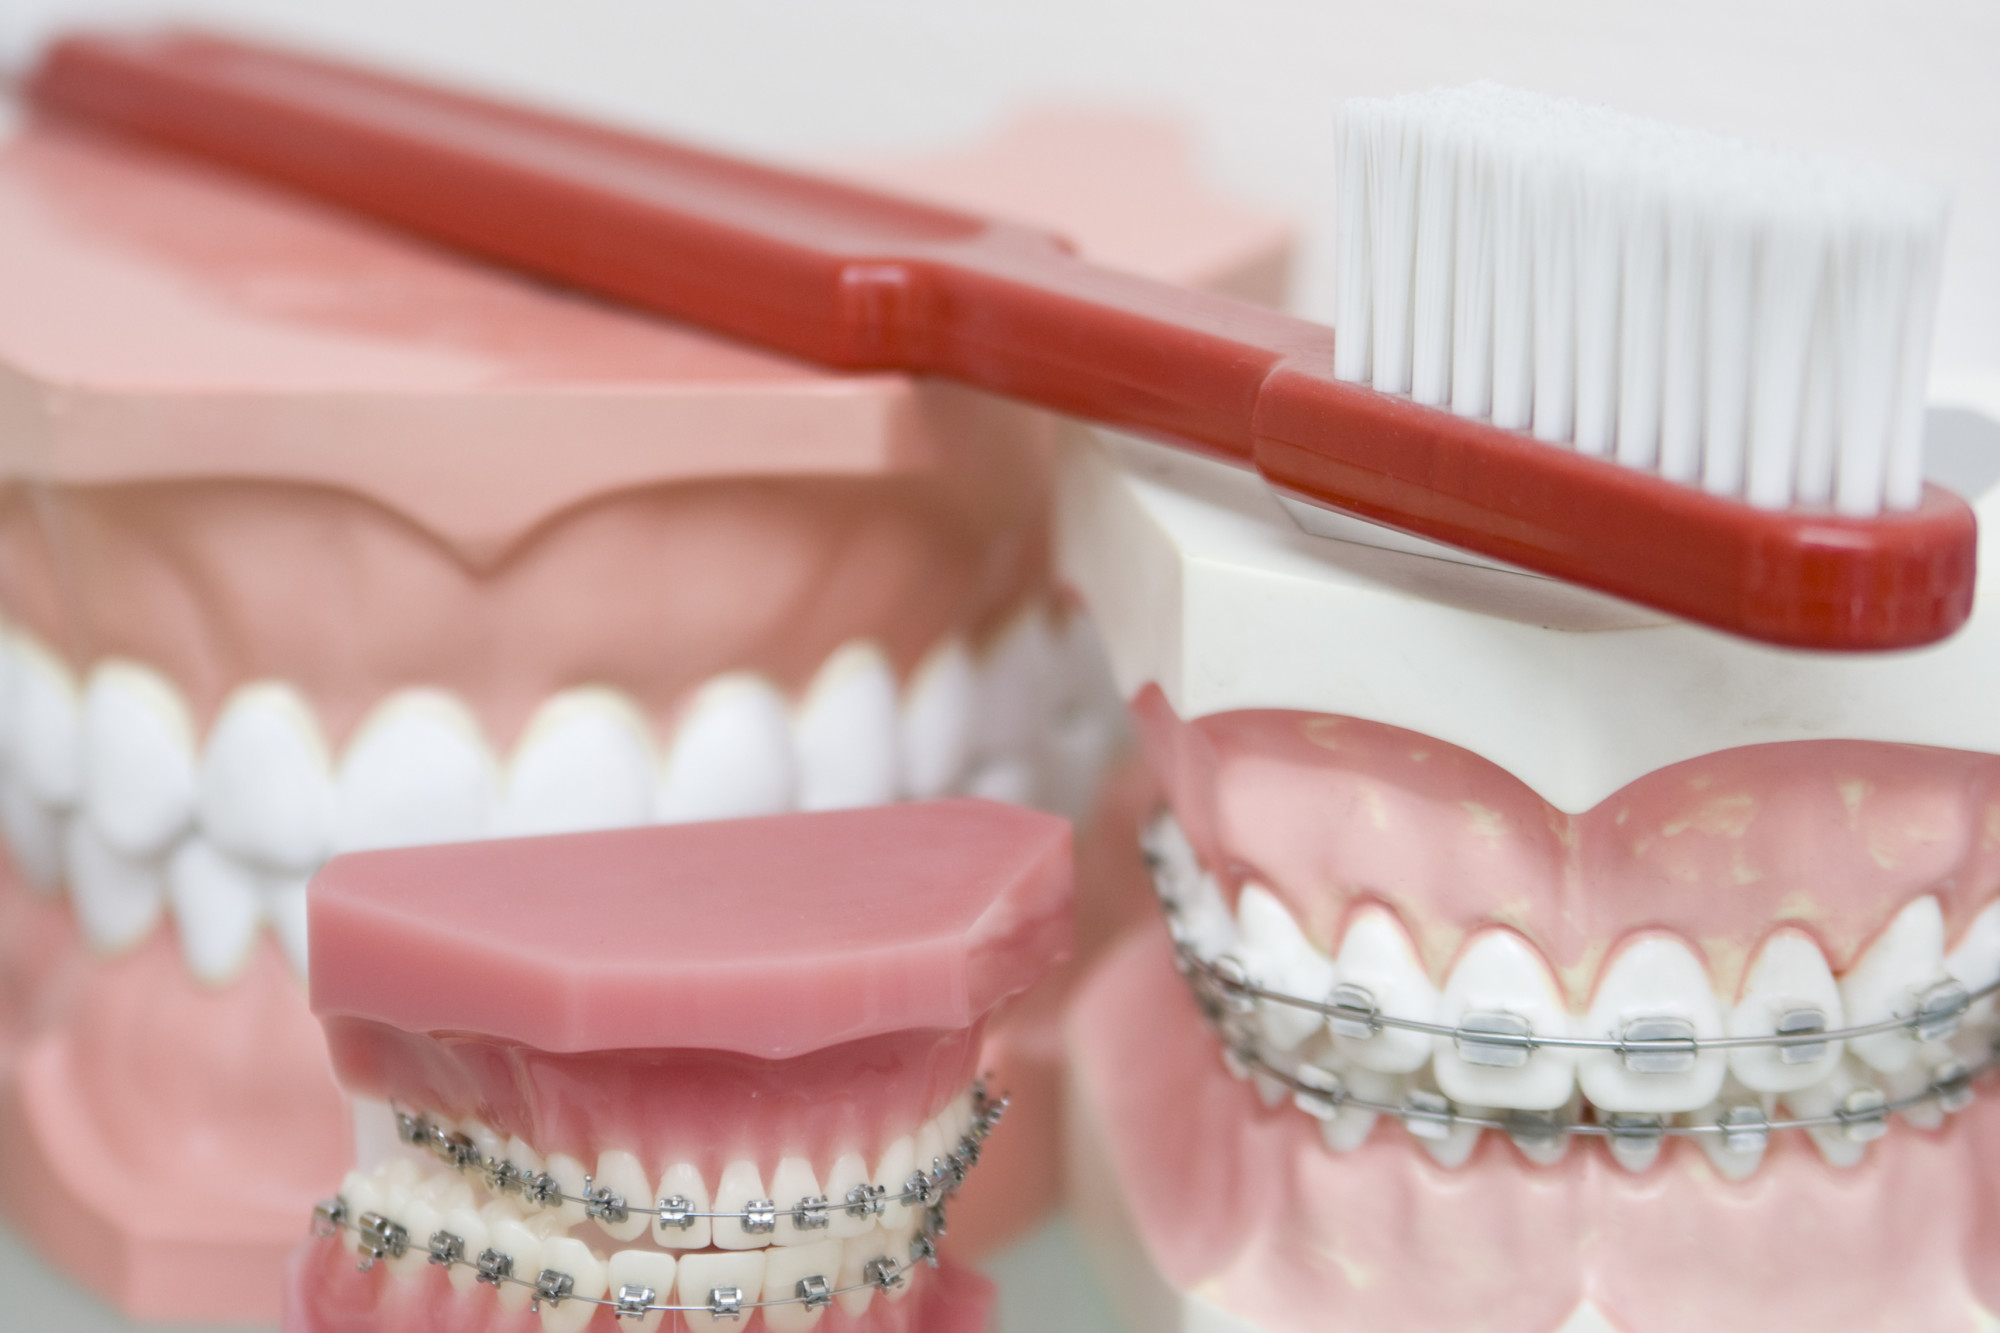 What Is the Best Toothbrush for Braces?